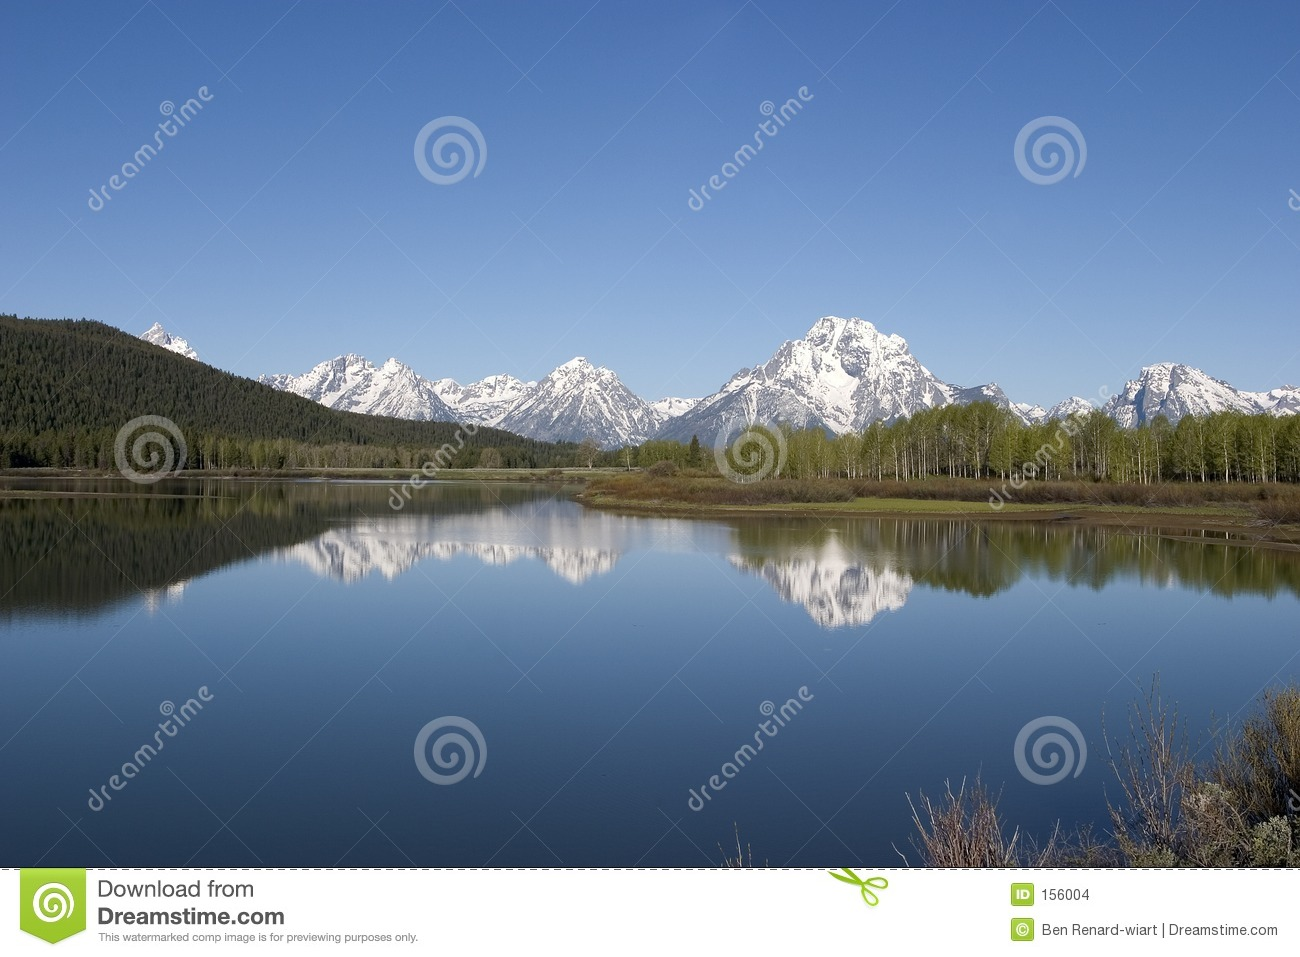 Grand Tetons National Park and reflections